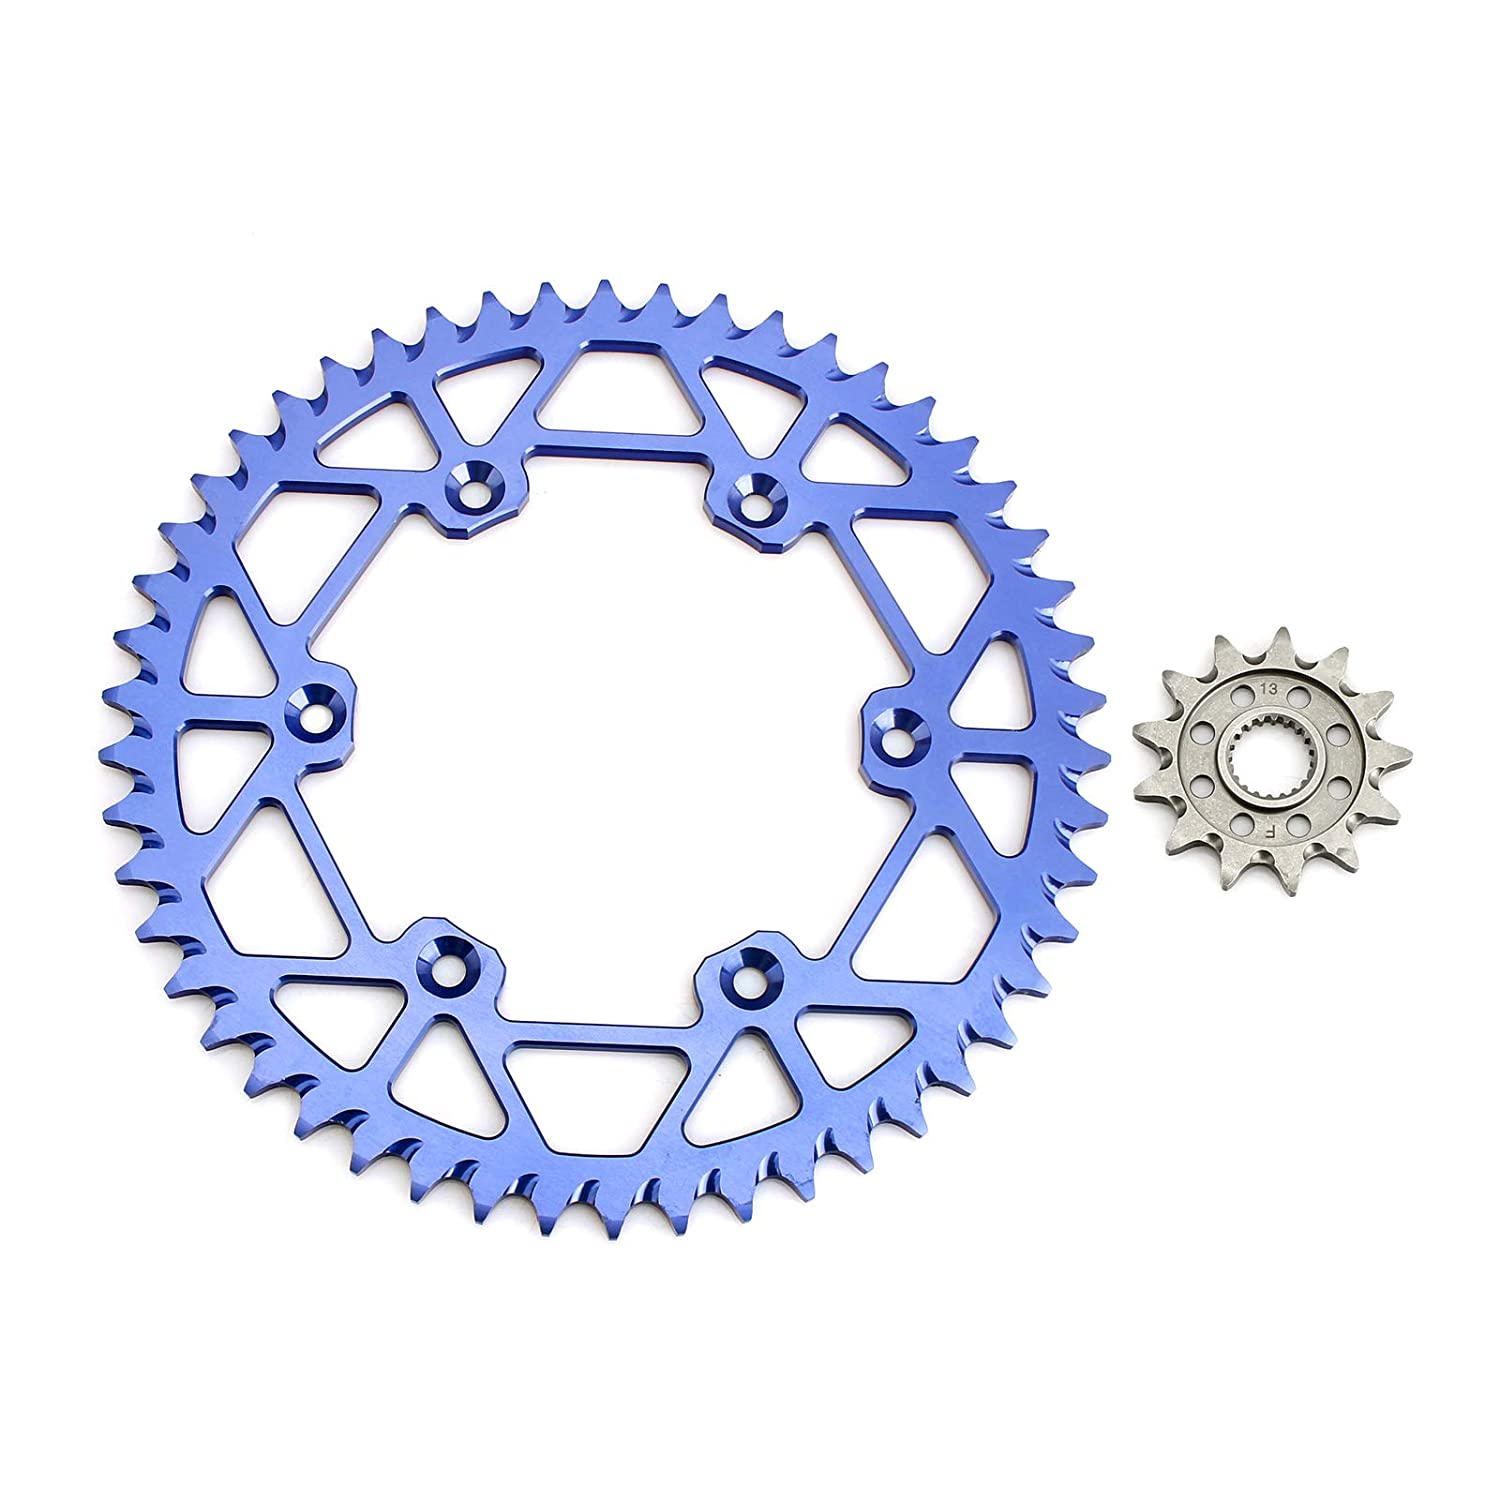 Smad 520-Pitch 120-Links Chain /& 13 Front//50 Rear Tooth Sprockets Kit for YAMAHA YZ125 05-19 WR250F 01-19 YZ250F 01-19 YZ250FX 15-18